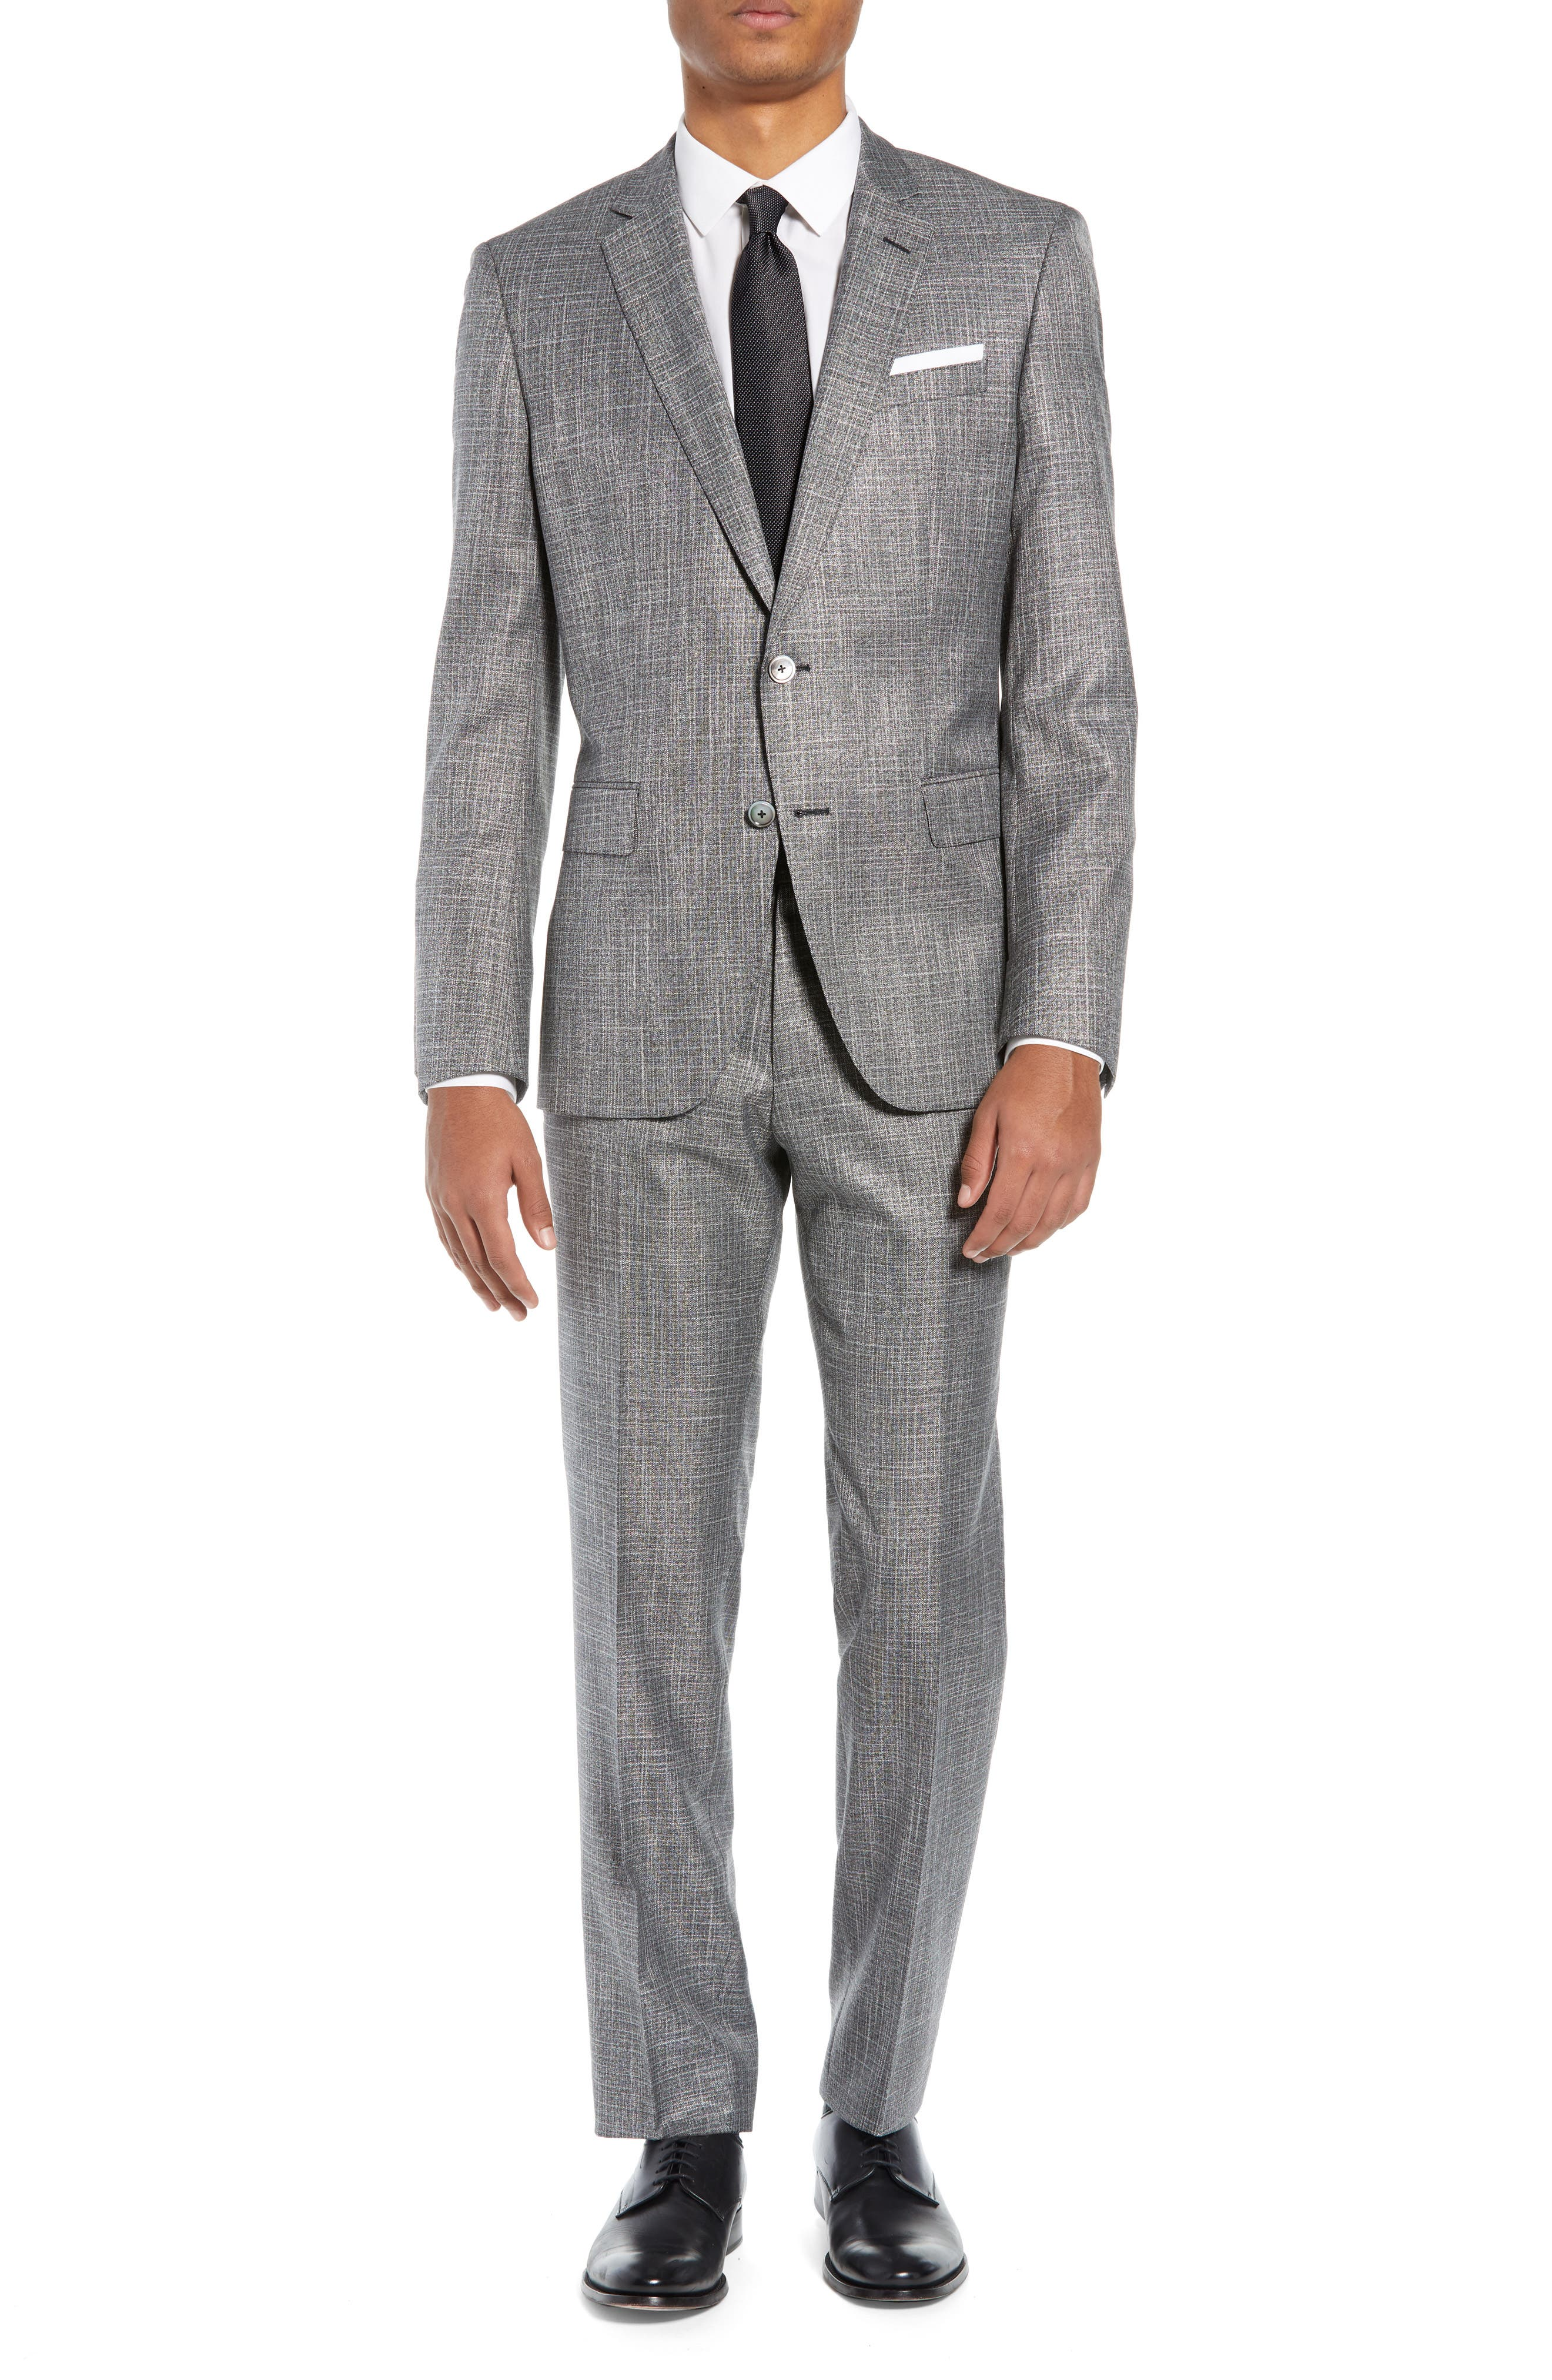 BOSS, Hutson/Gander Slim Fit Solid Wool Blend Suit, Main thumbnail 1, color, MEDIUM GREY